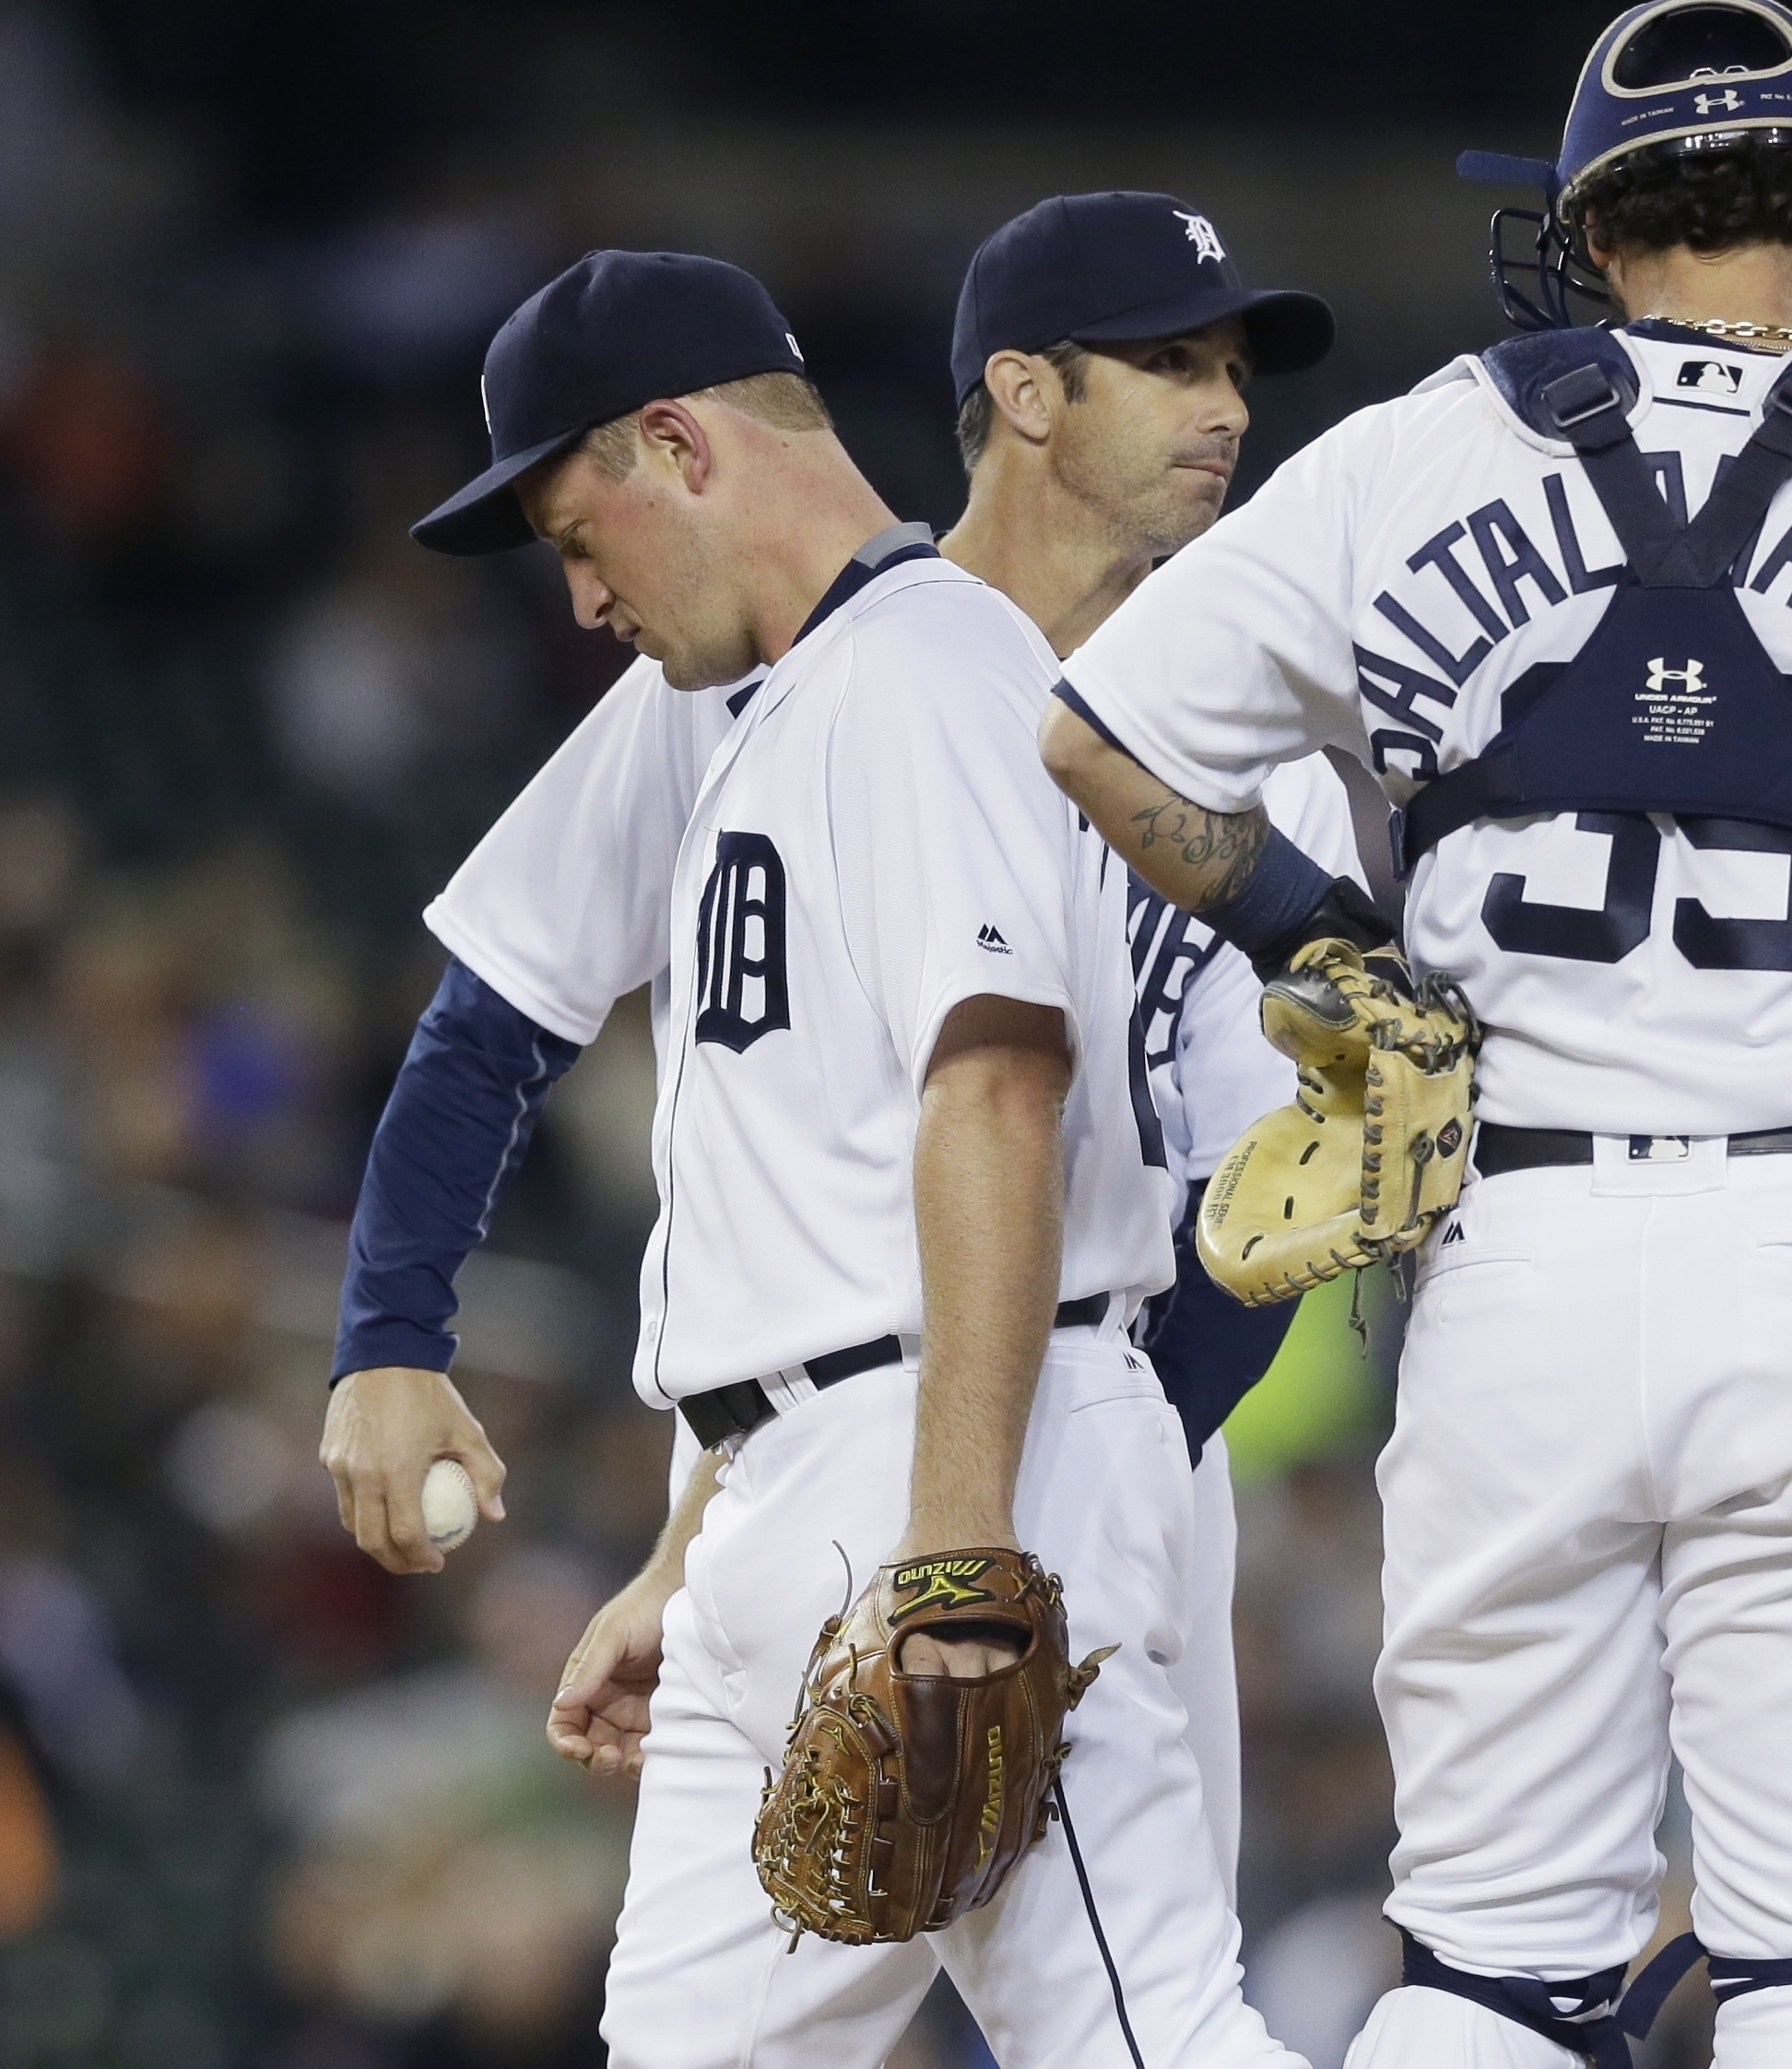 Detroit Tigers starting pitcher Jordan Zimmermann gives the ball to manager Brad Ausmus after being relieved during the seventh inning of a baseball game against the Oakland Athletics, Monday, April 25, 2016 in Detroit. Zimmermann (4-0) gave up a run in t